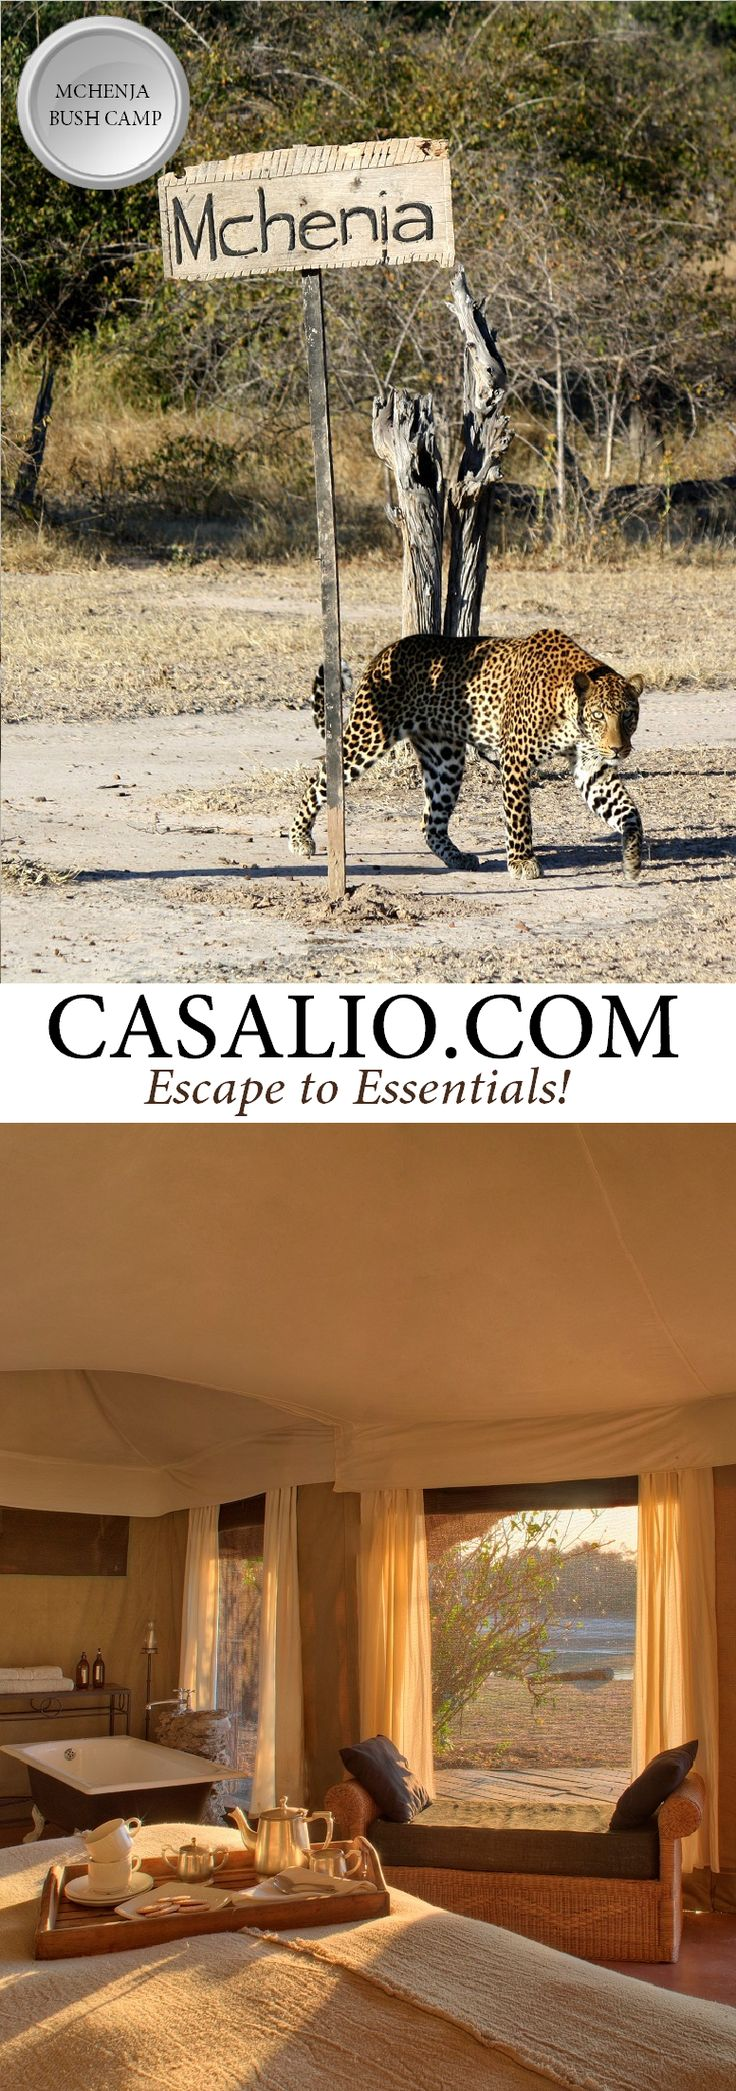 Mchenja Bush Camp |Luangwa River National Park, Zambia | The camp features 5 spacious octagonal shaped safari chalets. Each chalet is elegantly furnished, with an open air bathroom, hot and cold shower and Victorian style bath tubs. Superb viewing decks overlooking the Luangwa river where the wild animals drink. #luxurytravel #travel #luxuryvillas #villarental #safaricamps #safari #safaricamp #timeandtideafrica #casaliotravel #travelgram #mchenja #bushcamp #tourist #adventuretravel